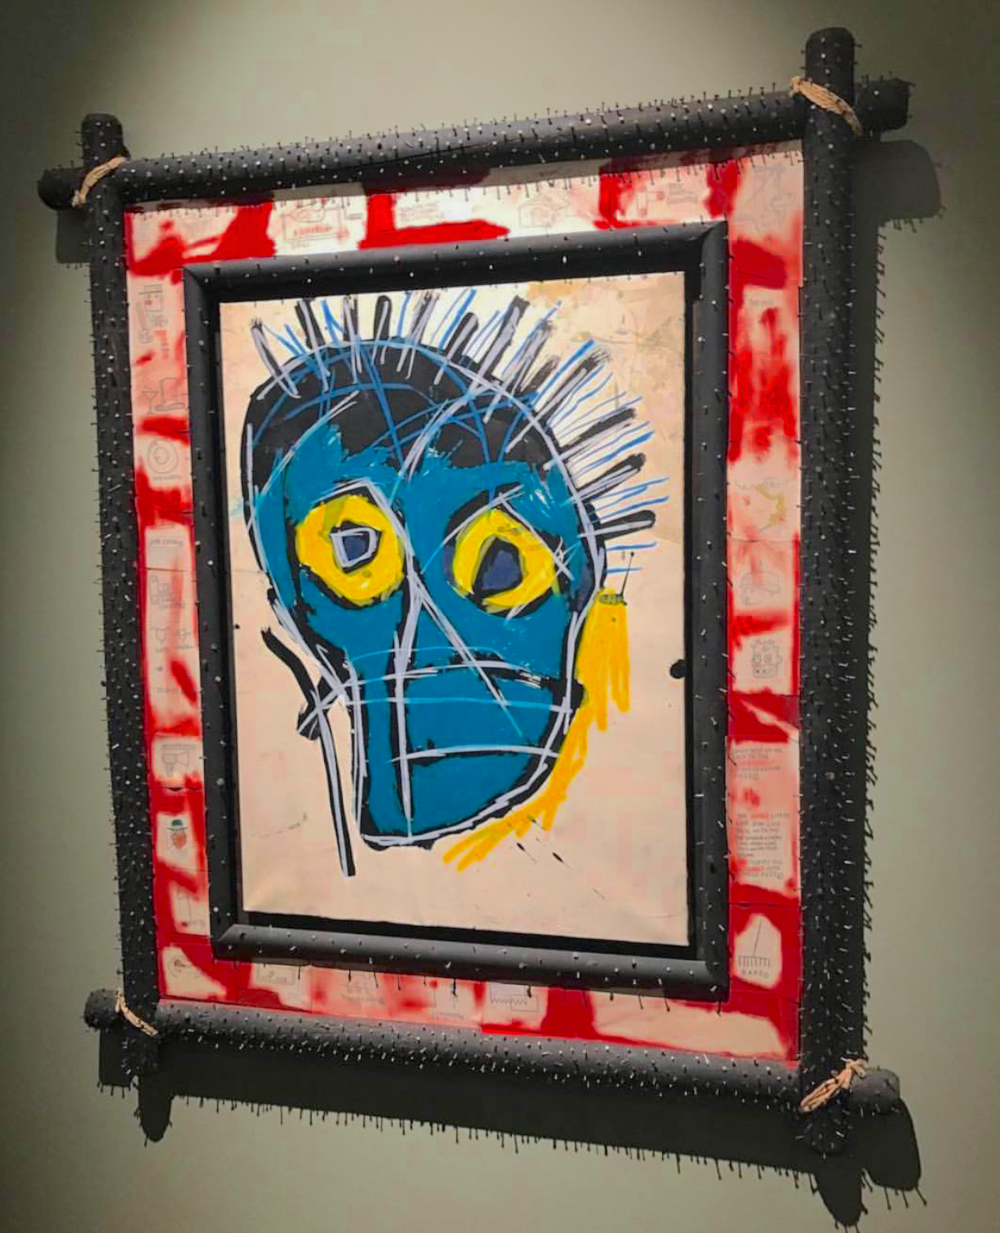 Jean-Michel Basquiat, Untitled, 1983/1987, Wienerroither & Kohlbacher Gallery